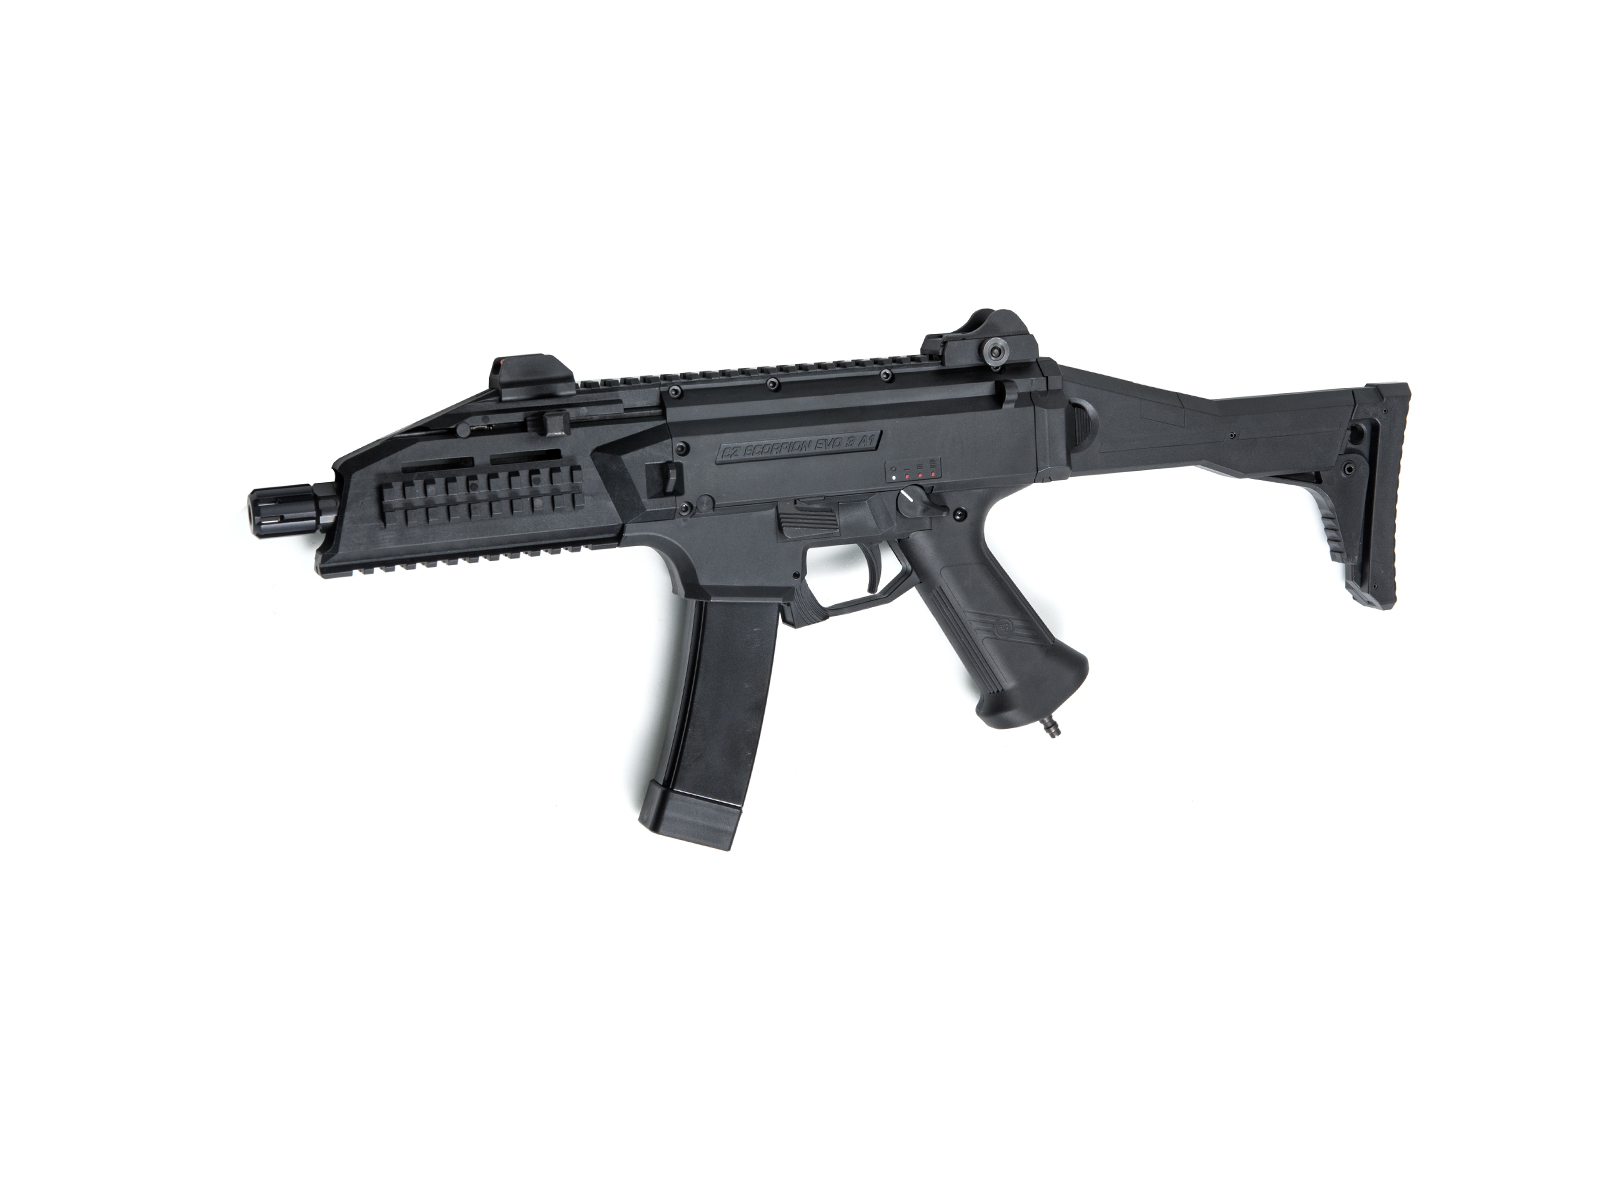 Replica Arma Airsoft CZ SCORPION EVO 3 A1 - HPA EDITION cu Functionare Electrica